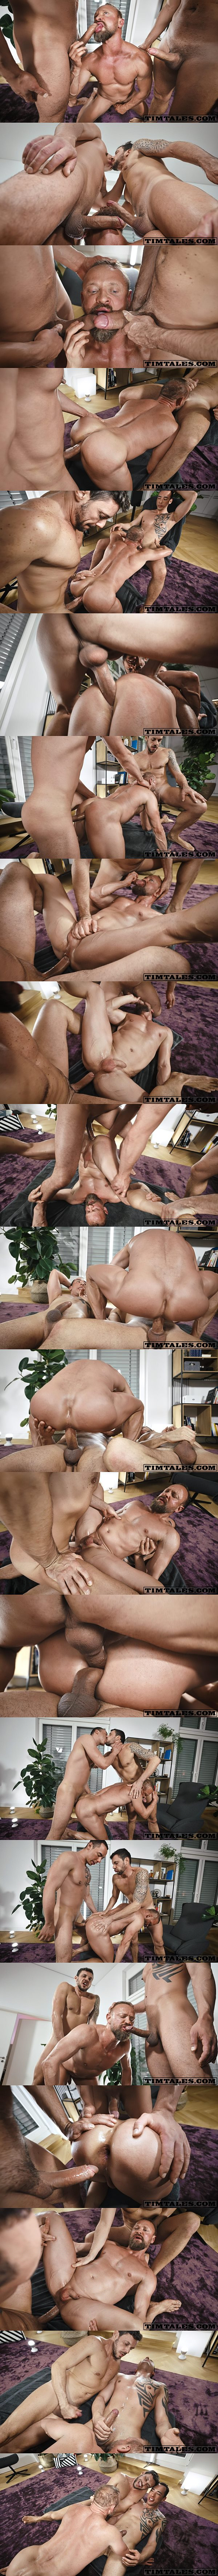 Timtales - Gaucho and Tian Tao tag team and bareback muscle daddy Guido Stahl in different positions before they double penetrate Guido and blow their creamy loads 02